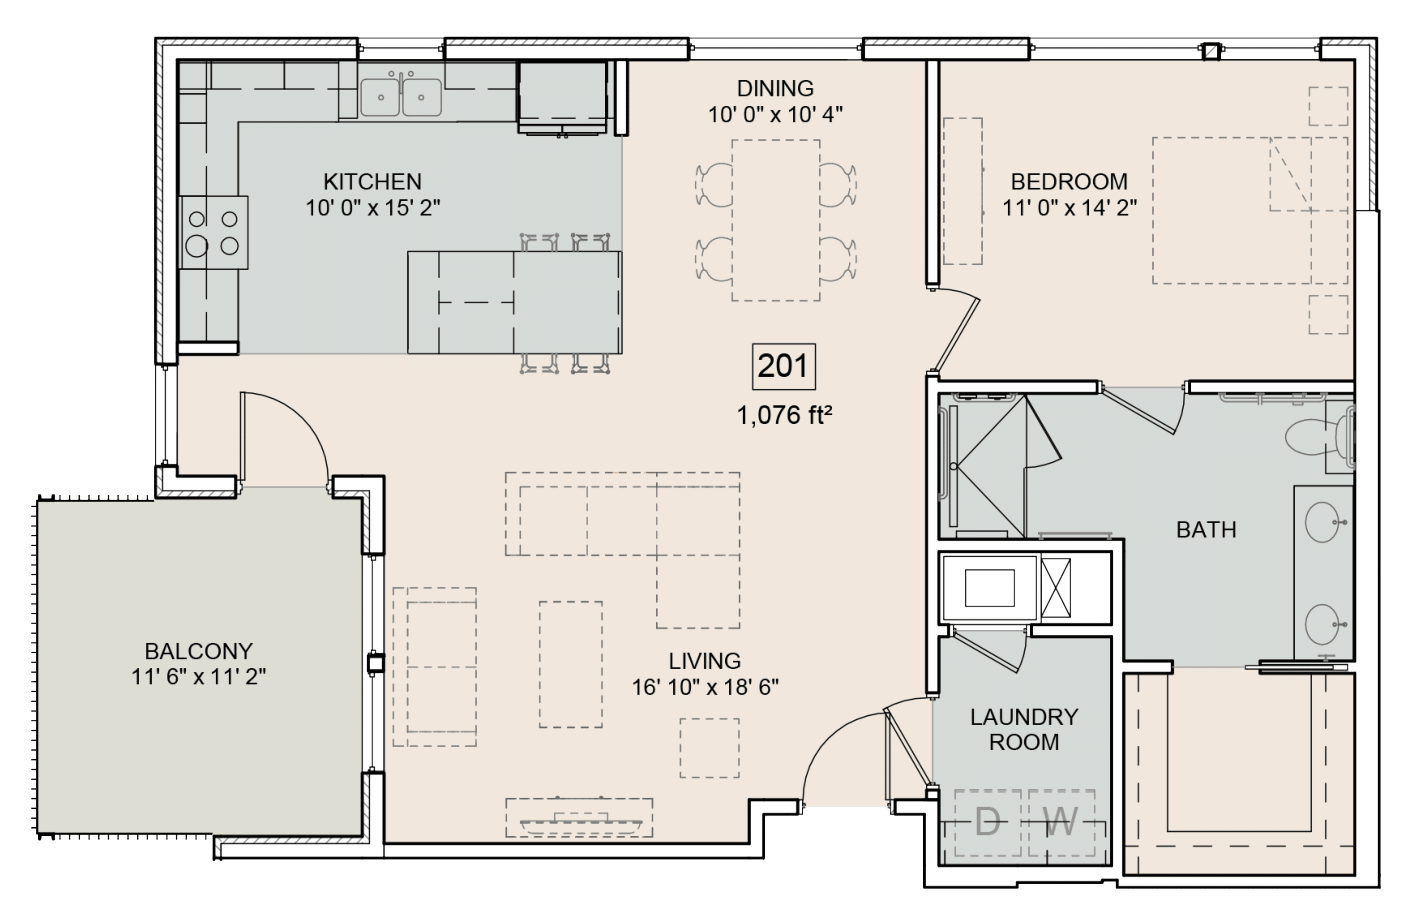 A Antoine unit with 1 Bedrooms and 1 Bathrooms with area of 1076 sq. ft